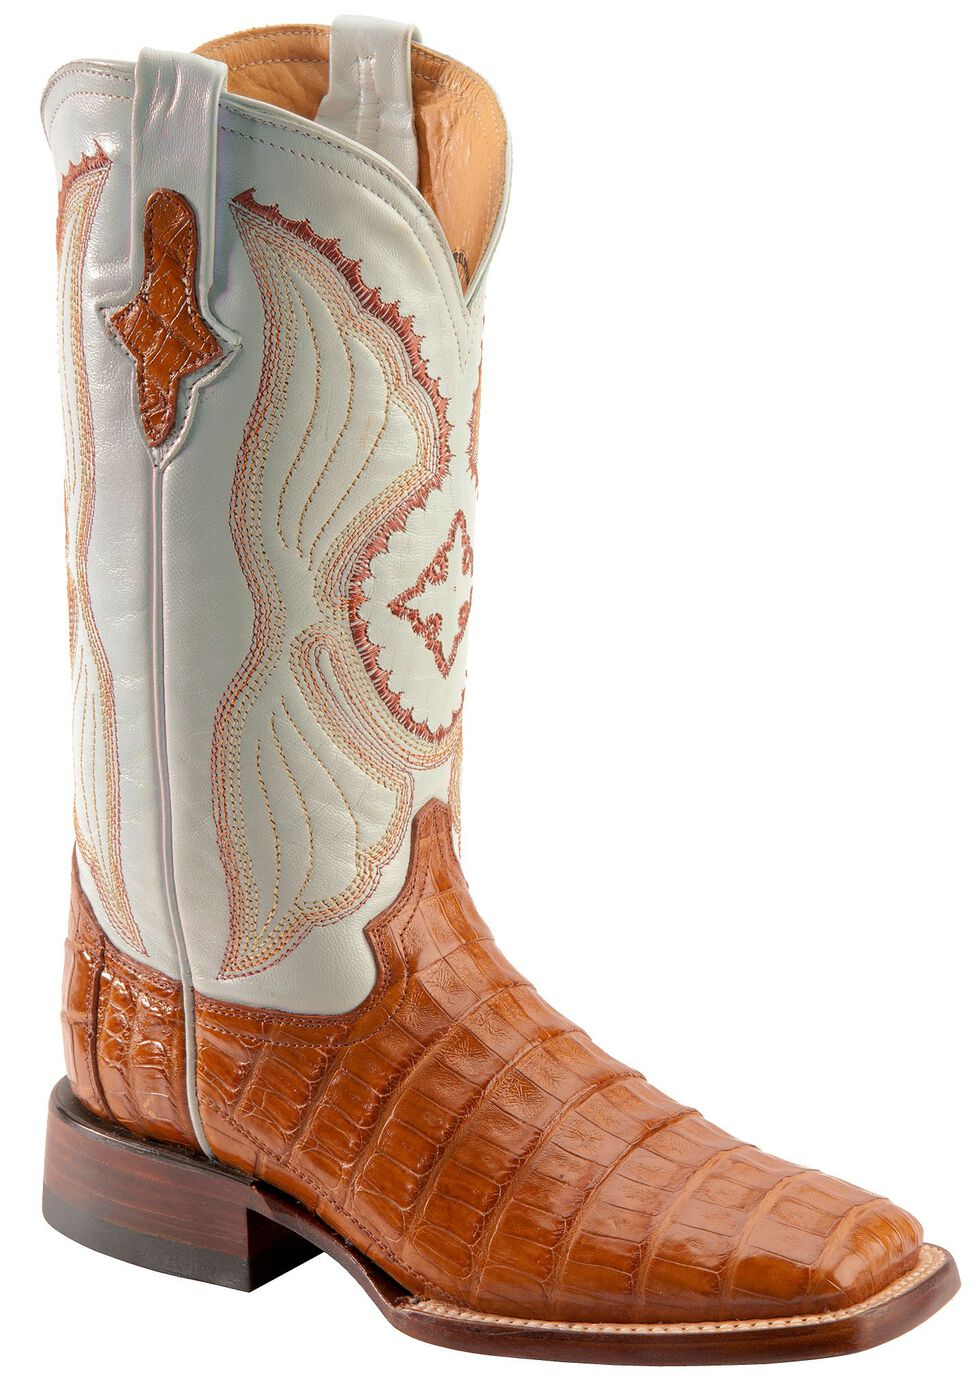 Ferrini Cognac Caiman Belly Cowgirl Boots - Wide Square Toe, Cognac, hi-res